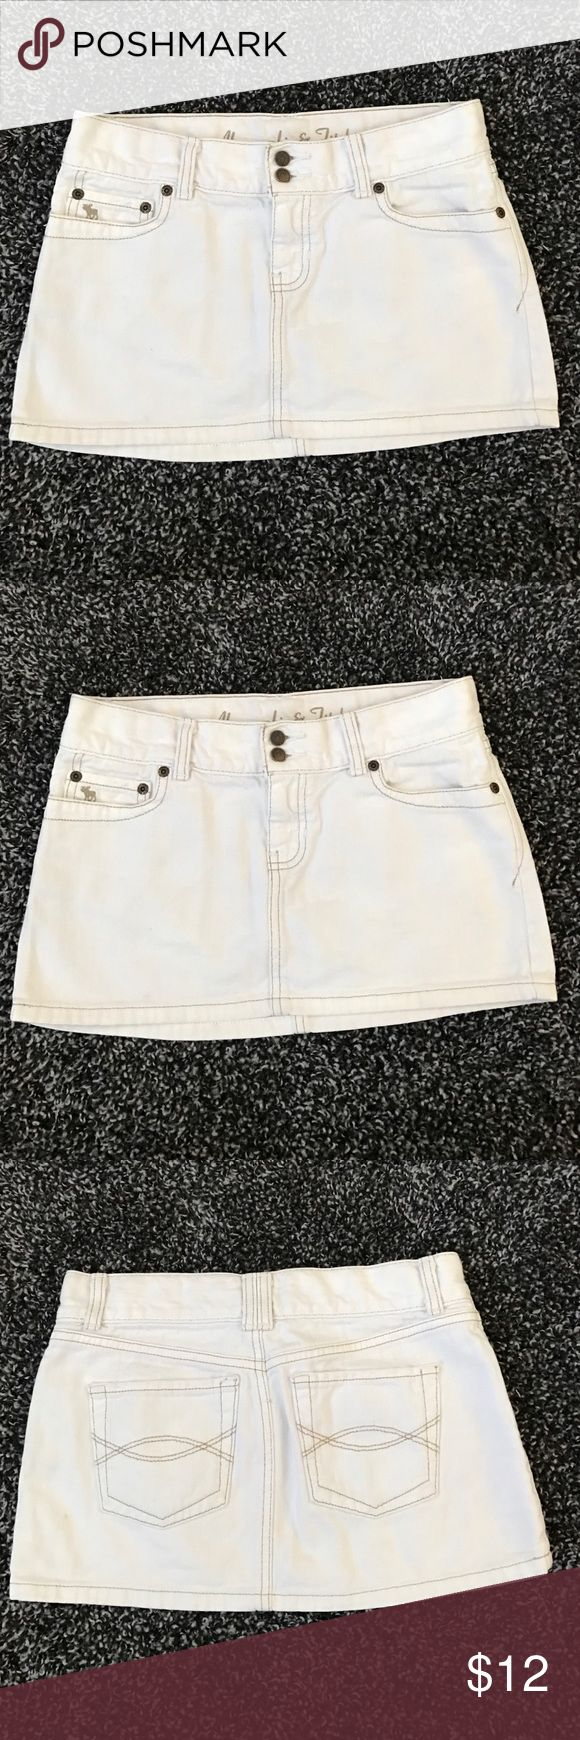 "Abercrombie & fitch white denim skirt 00 Abercrombie & fitch white denim skirt 00  length 11"" long Abercrombie & Fitch Skirts Mini"